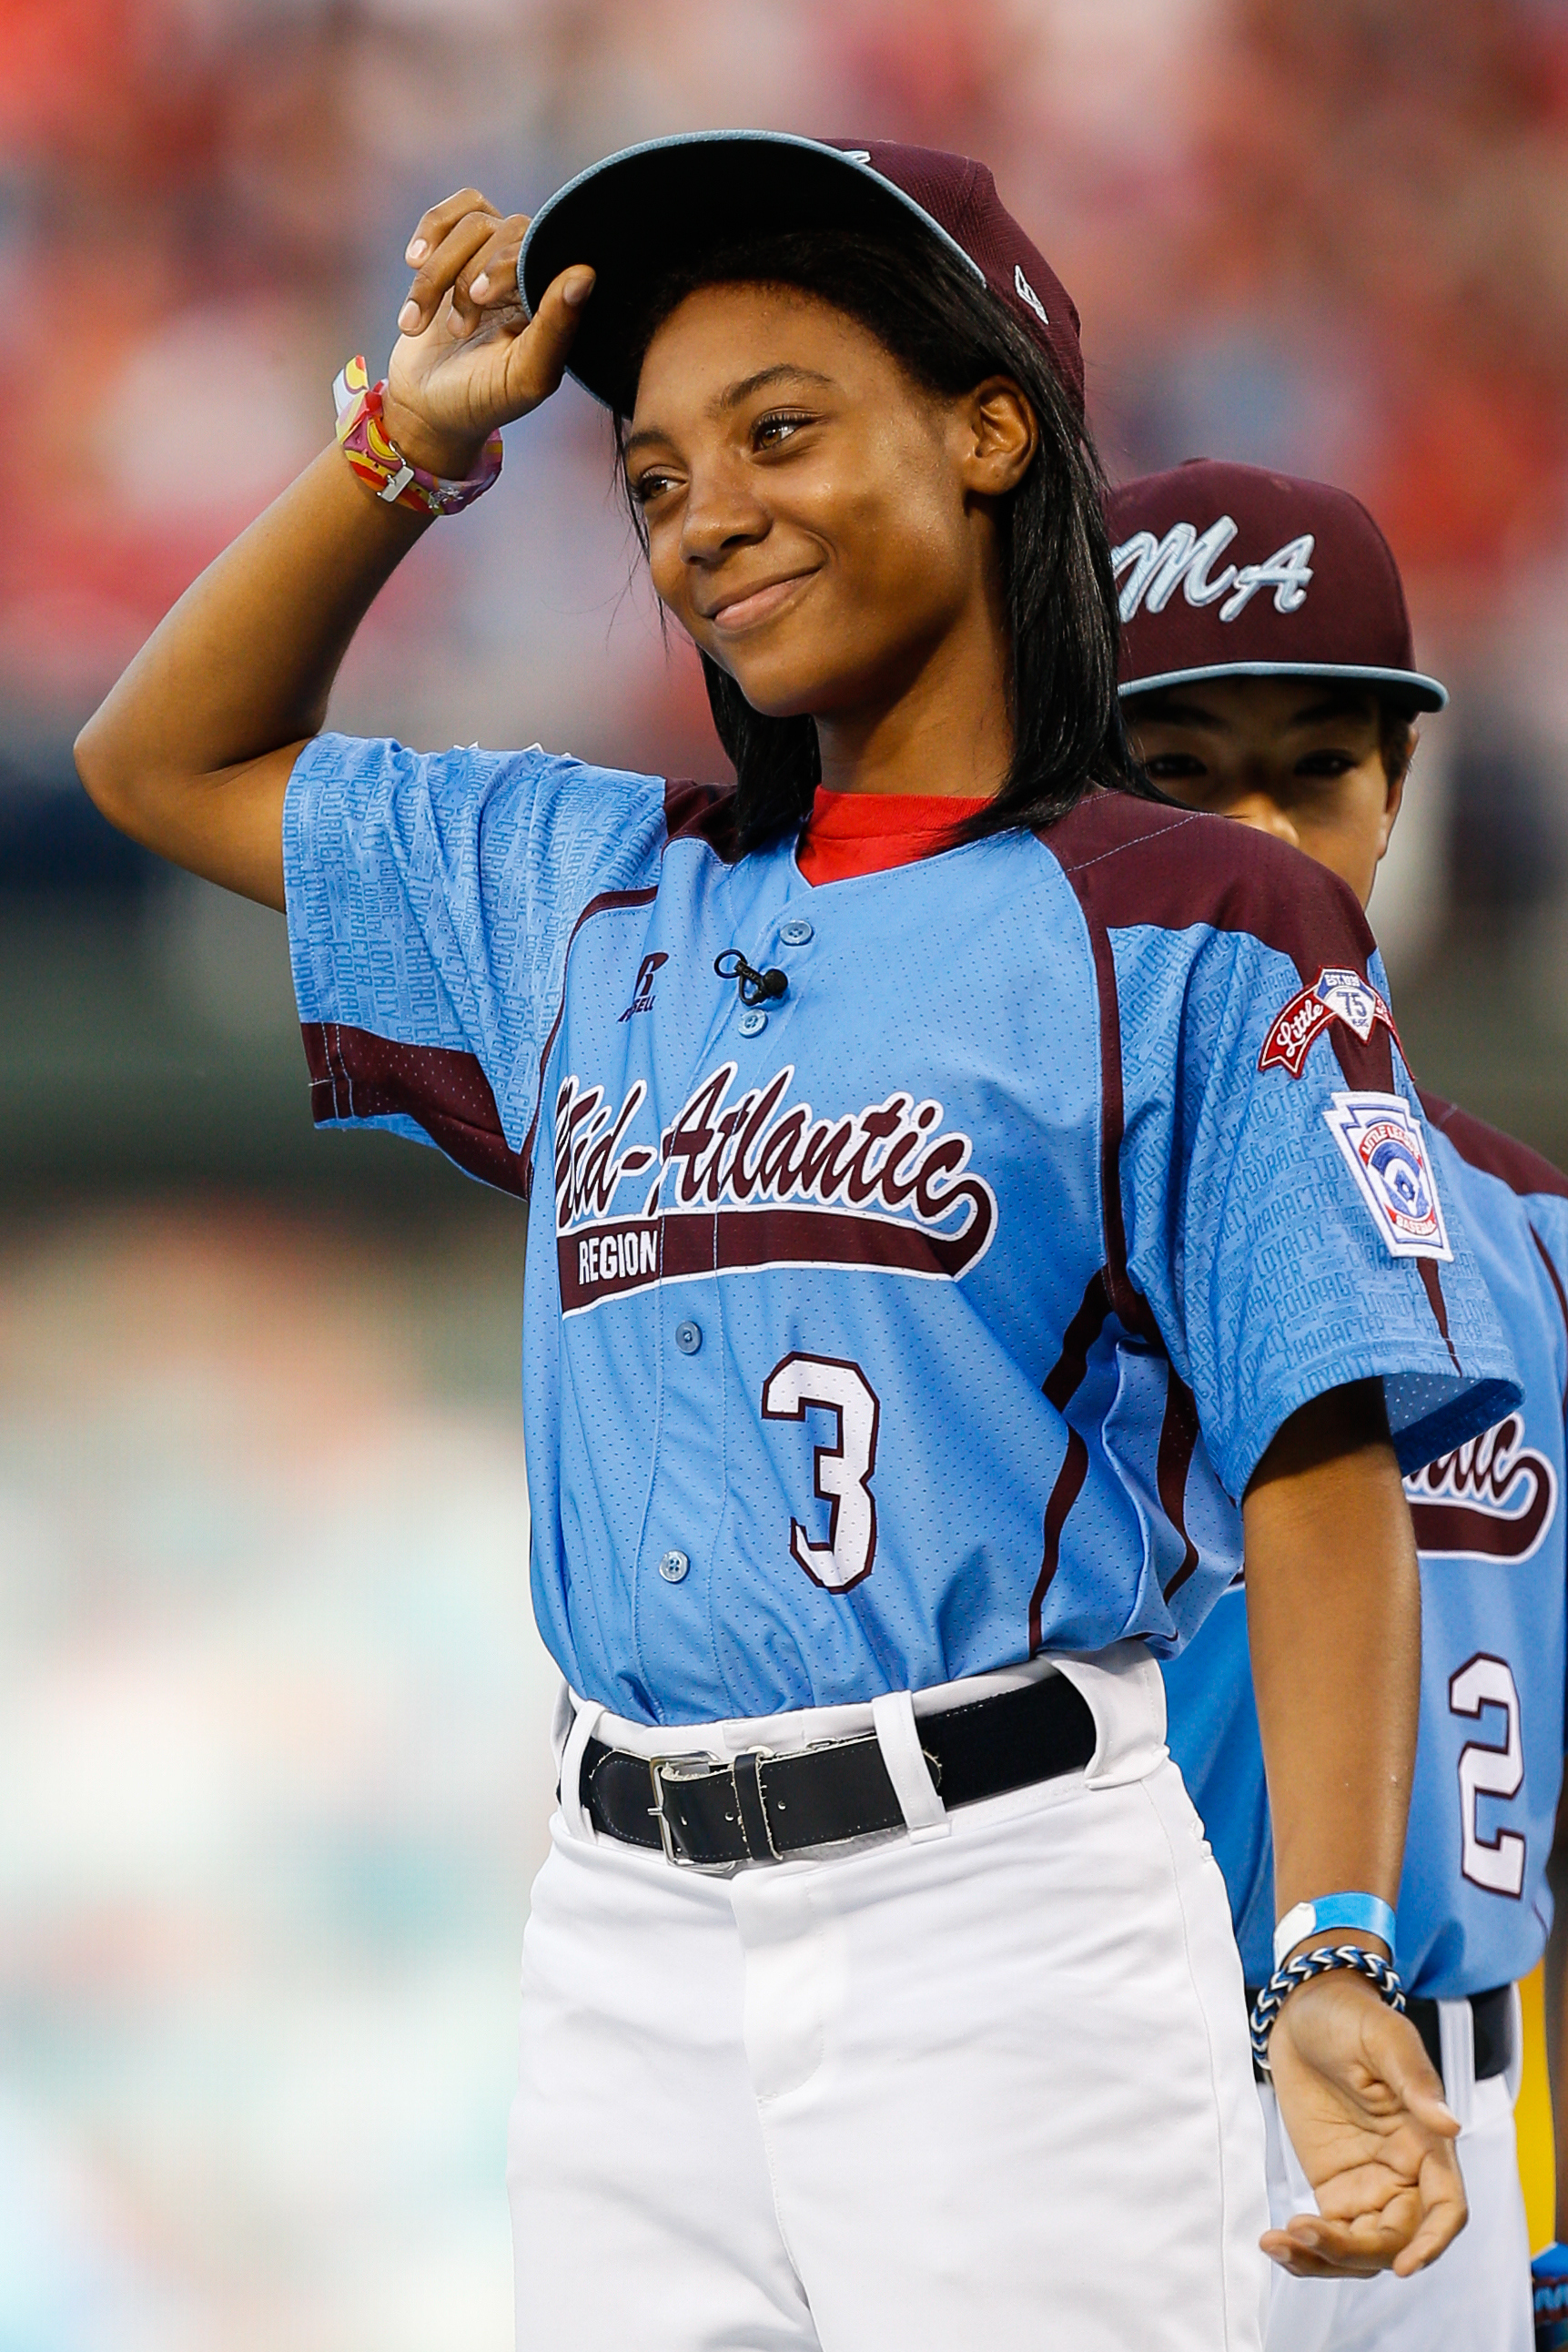 Mo'Ne Davis - First girl to pitch a shutoutin a Little League World Series, First African-American Girl to play in the series, average fastball mph of 71, the equivalent of 93 mpg in the major leagues